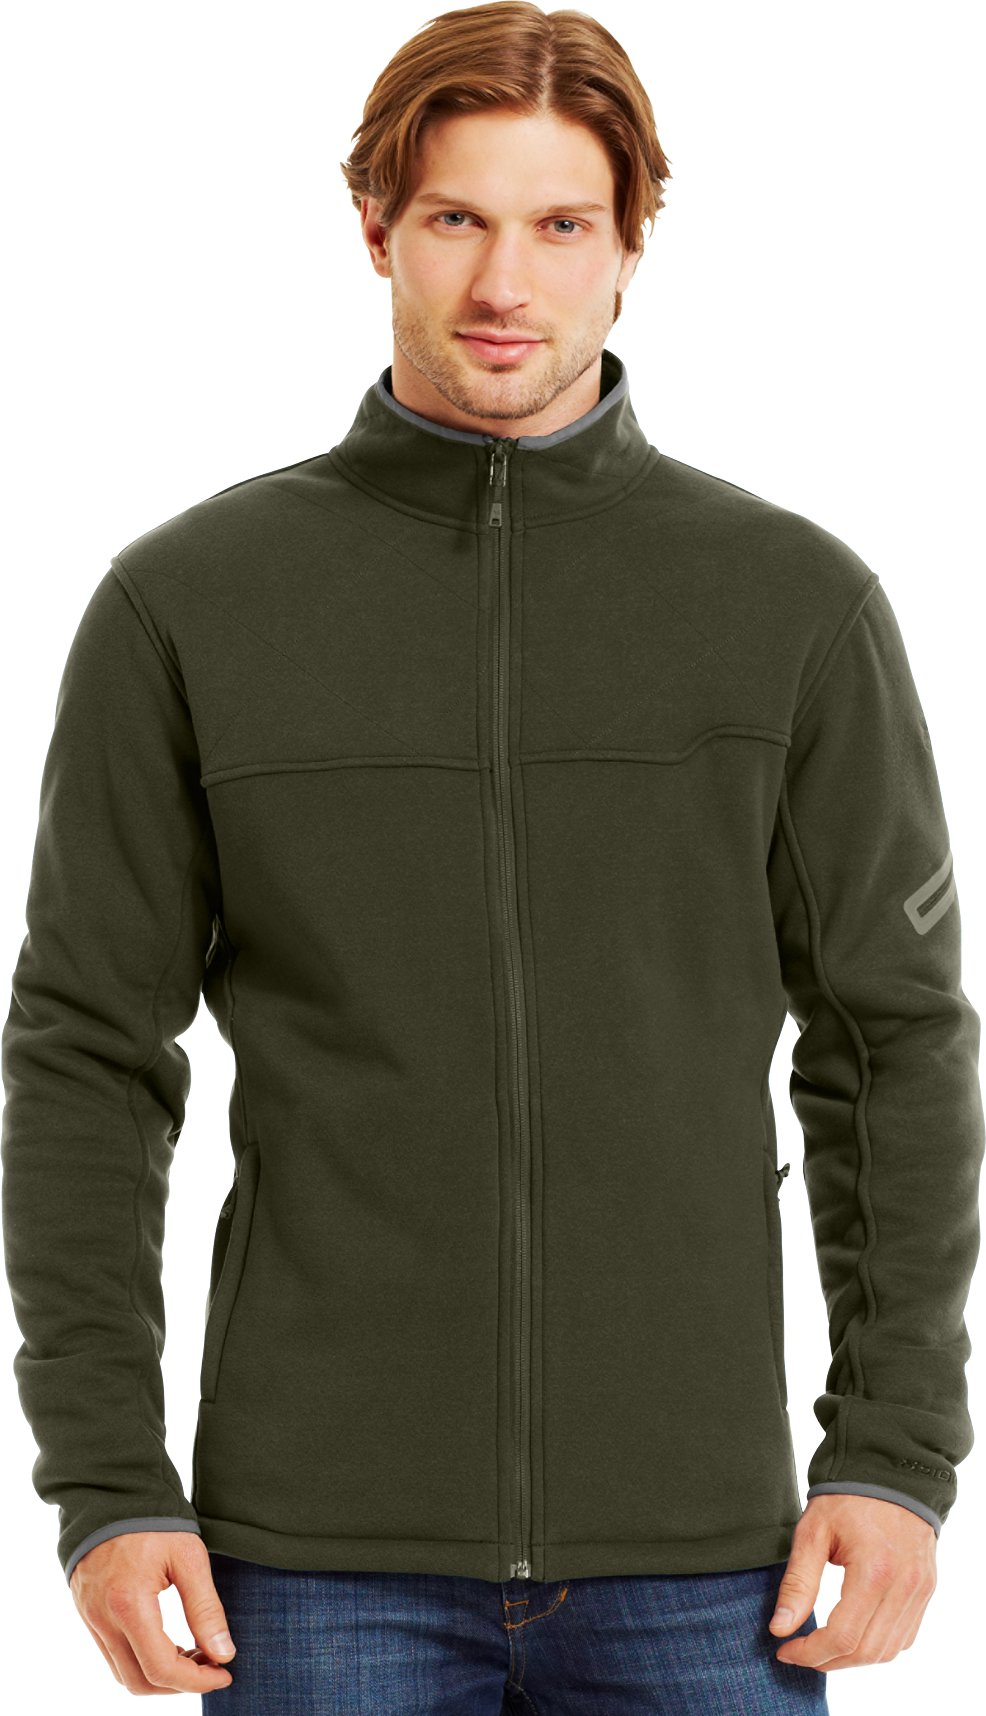 Men's Extreme ColdGear® Jacket, GREENHEAD, Front